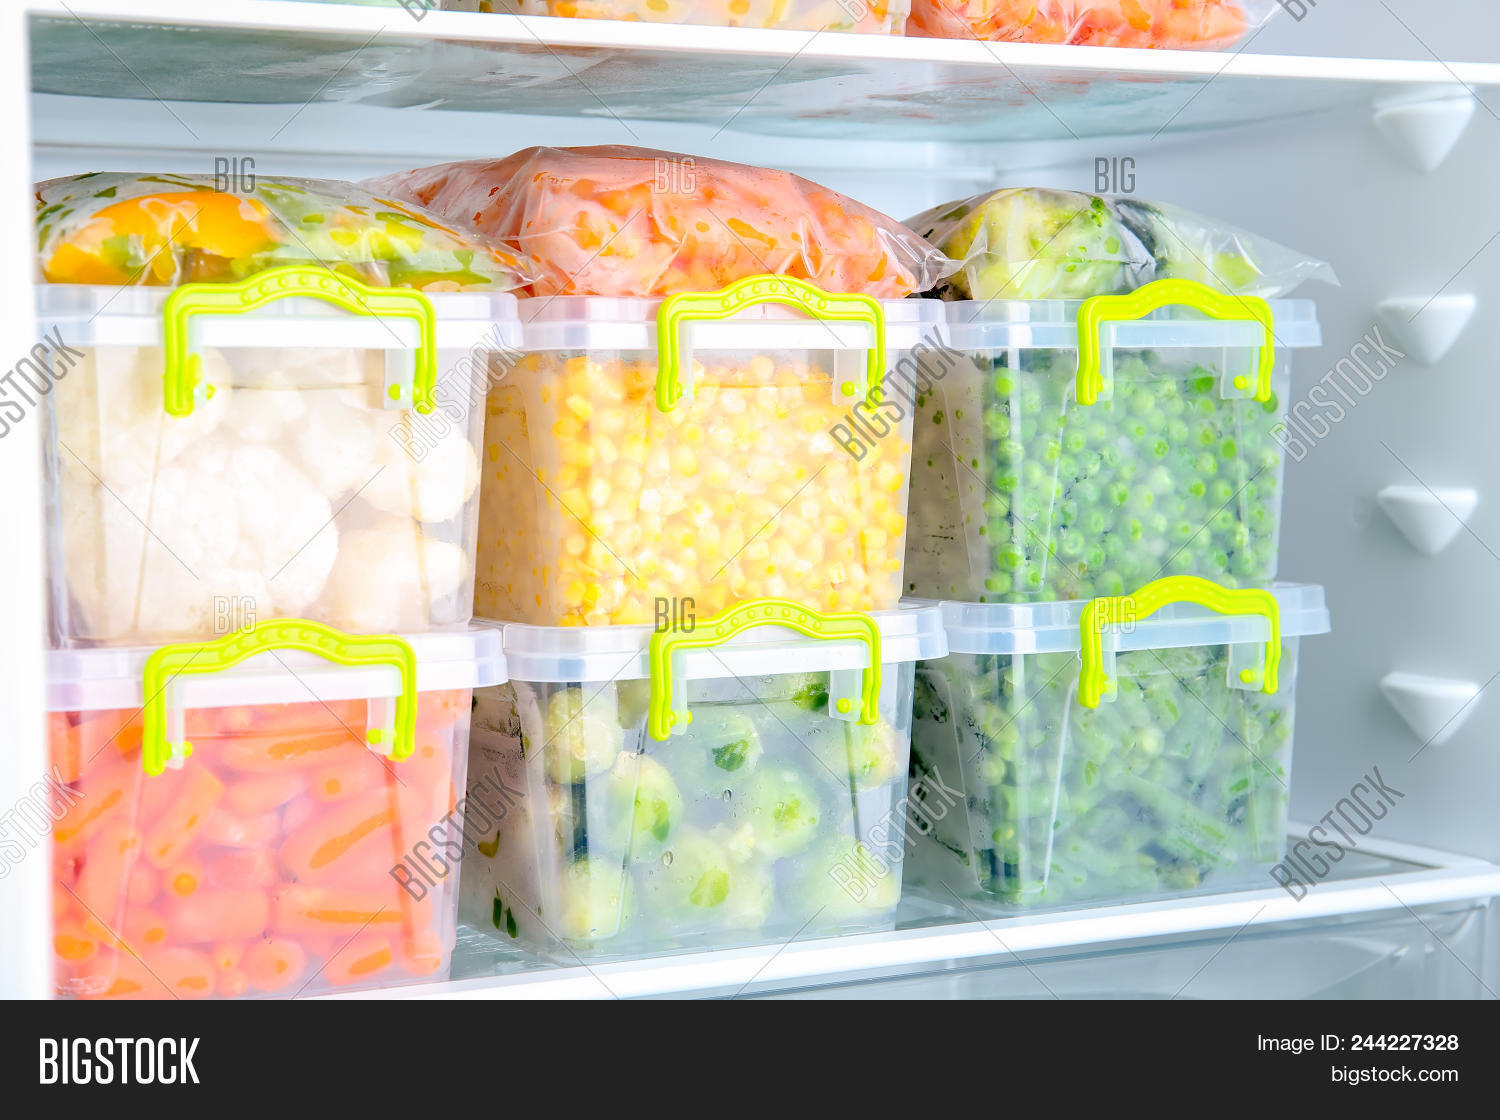 appliance,assortment,background,box,brussel,carrot,clean,closeup,cold,containers,corn,deep,different,domestic,electric,equipment,food,freeze,freezer,freshness,fridge,frost,frozen,groceries,healthy,home,homemade,household,icebox,ingredient,kitchen,mix,object,peas,preserve,products,raw,refrigeration,refrigerator,shelf,sprouts,storage,temperature,variety,vegan,vegetables,vegetarian,veggies